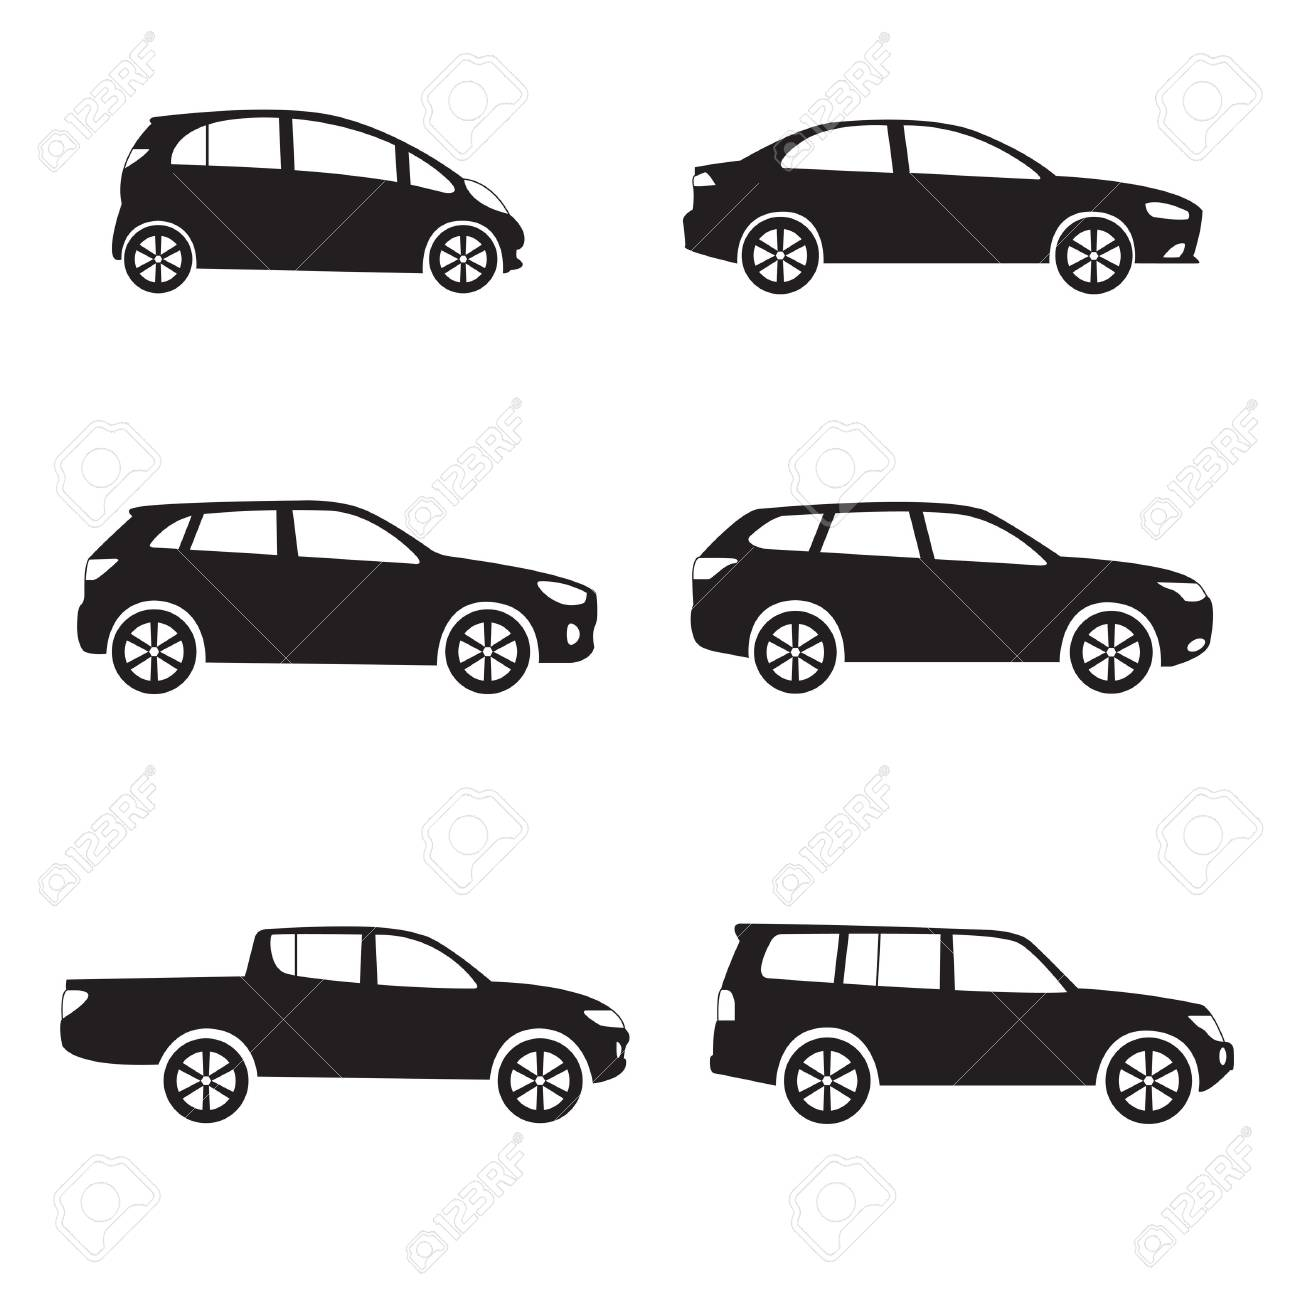 Cars Icon Set Different Vector Car Forms Royalty Free Cliparts